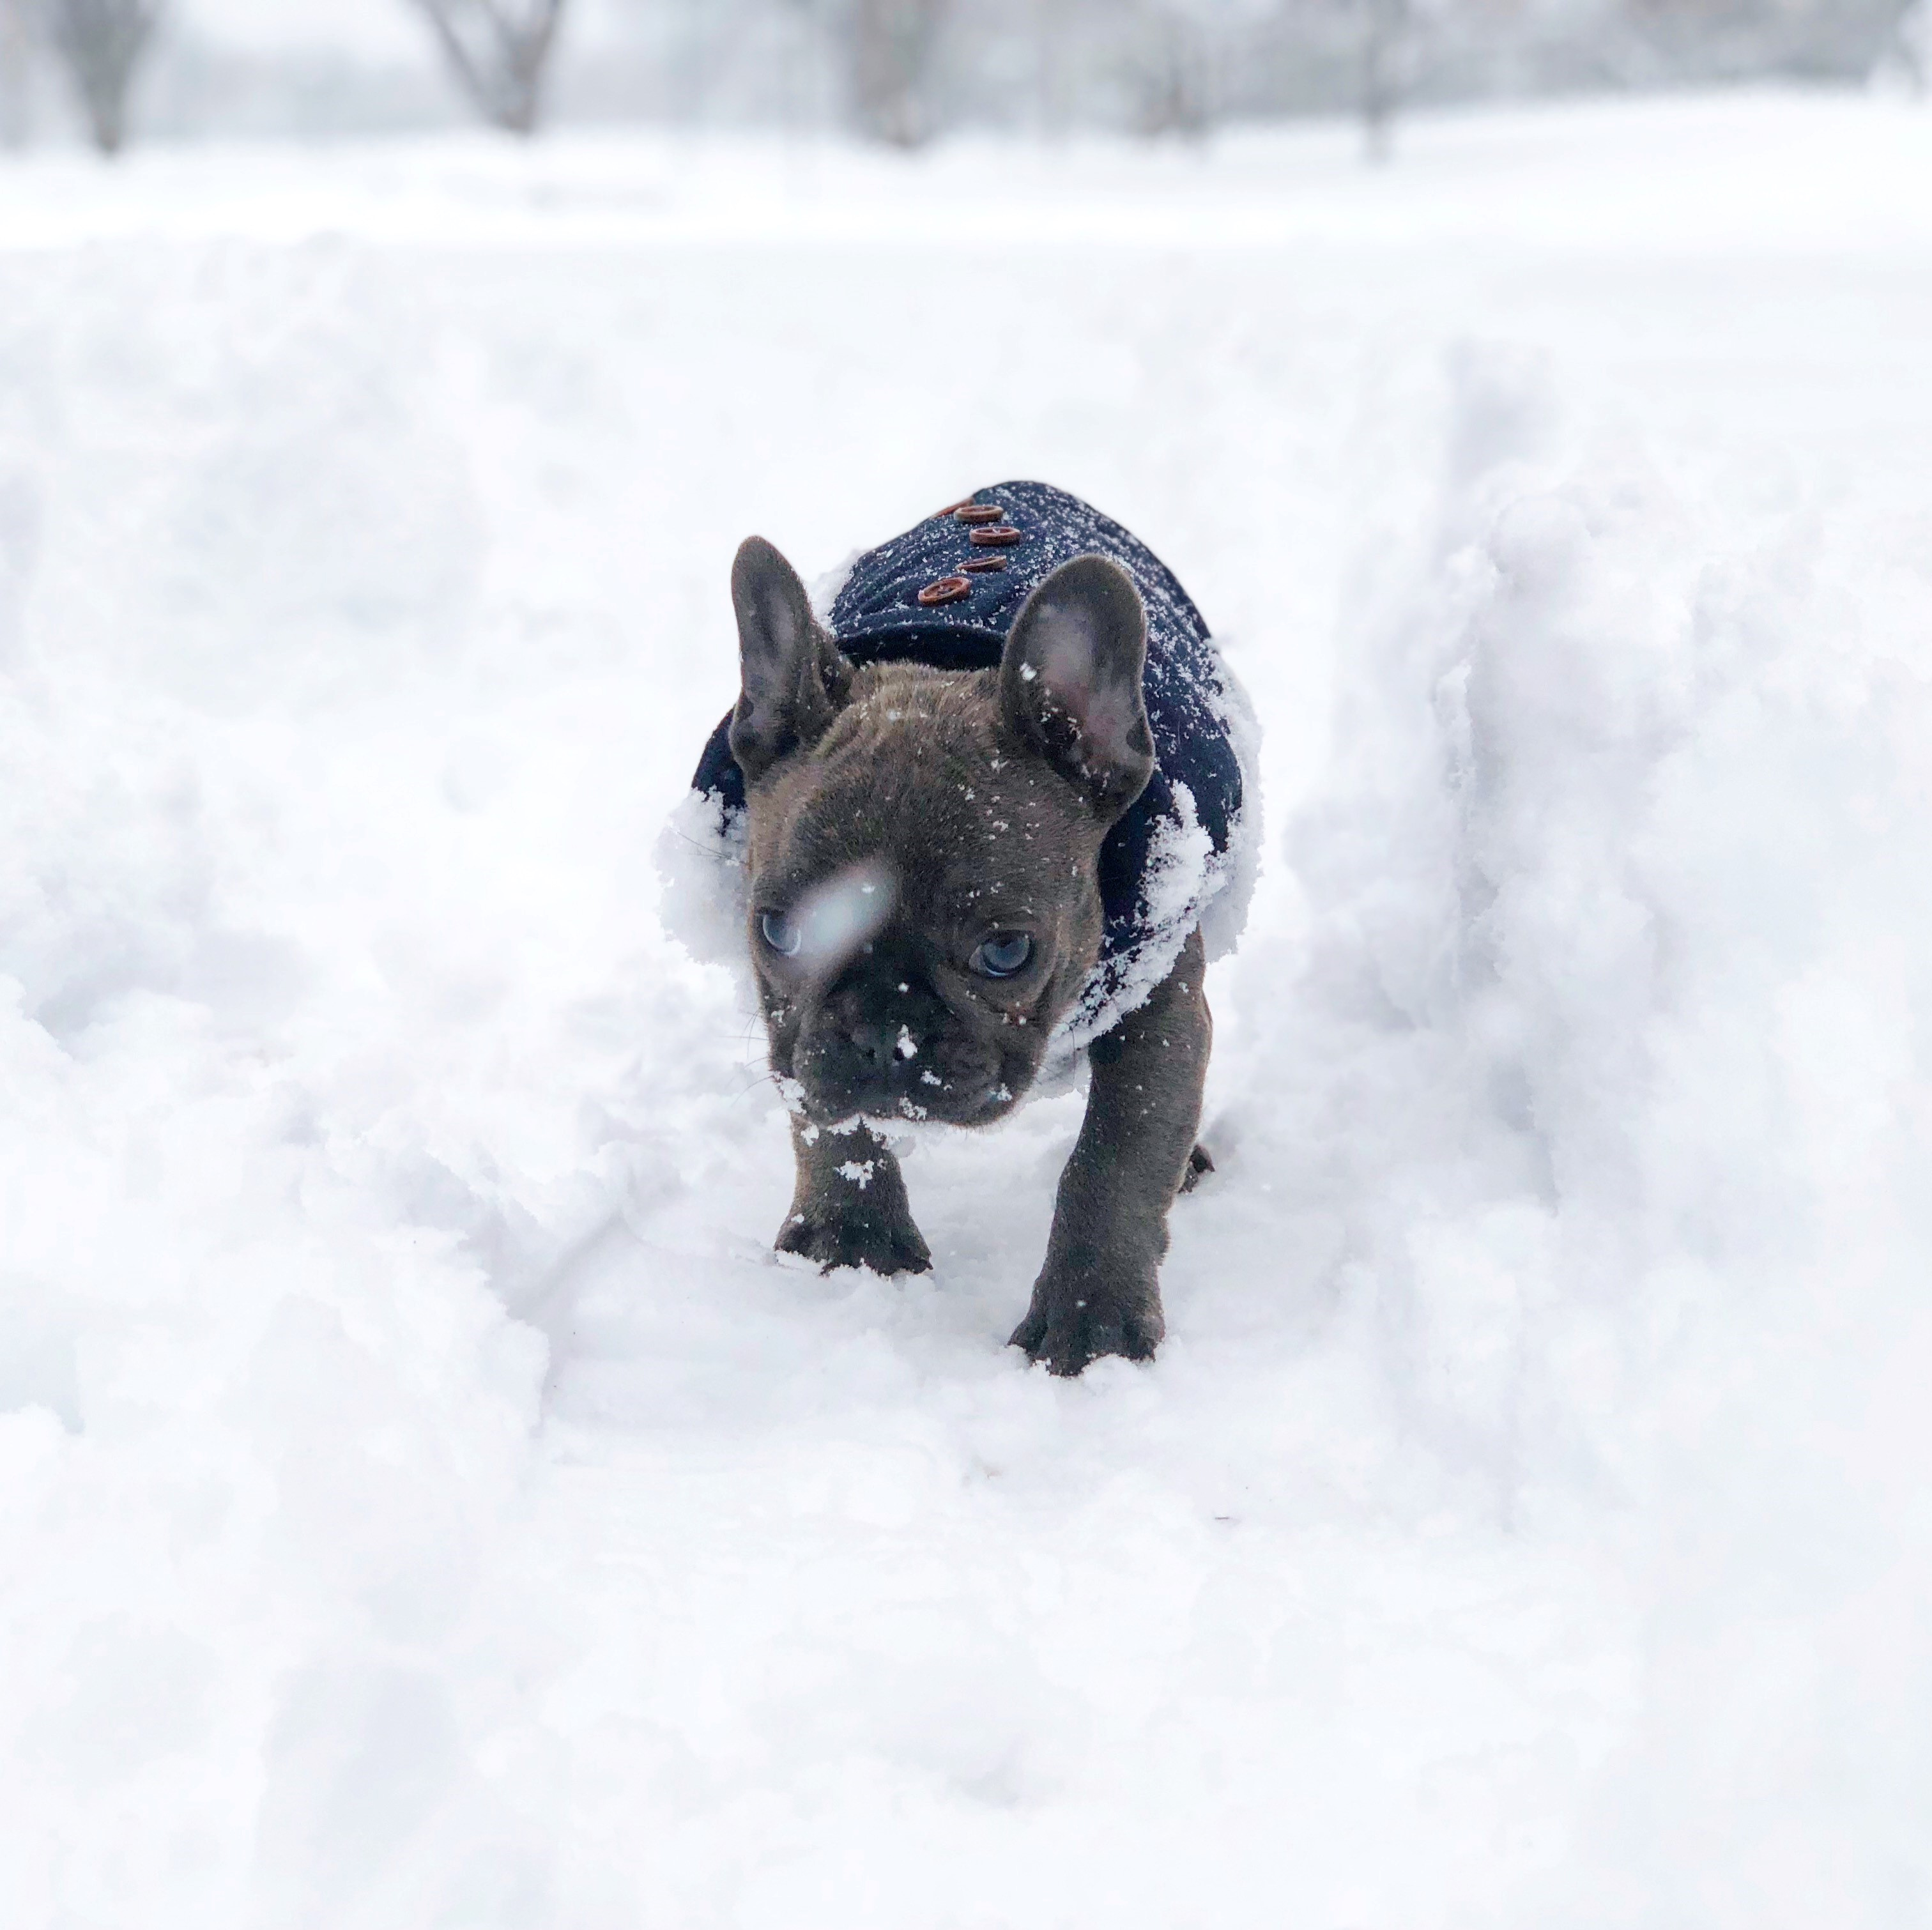 D.C. finally got its first real snowfall of the season -- on March 21! Given that it's the probably the only flakes we'll see for a while, the pups of the DMV decided to really live it up. Check out a few of the adorable pets we spotted chilling in the snow today!{ } (Image: Courtesy{ }IG user @linnarosethefrenchie)